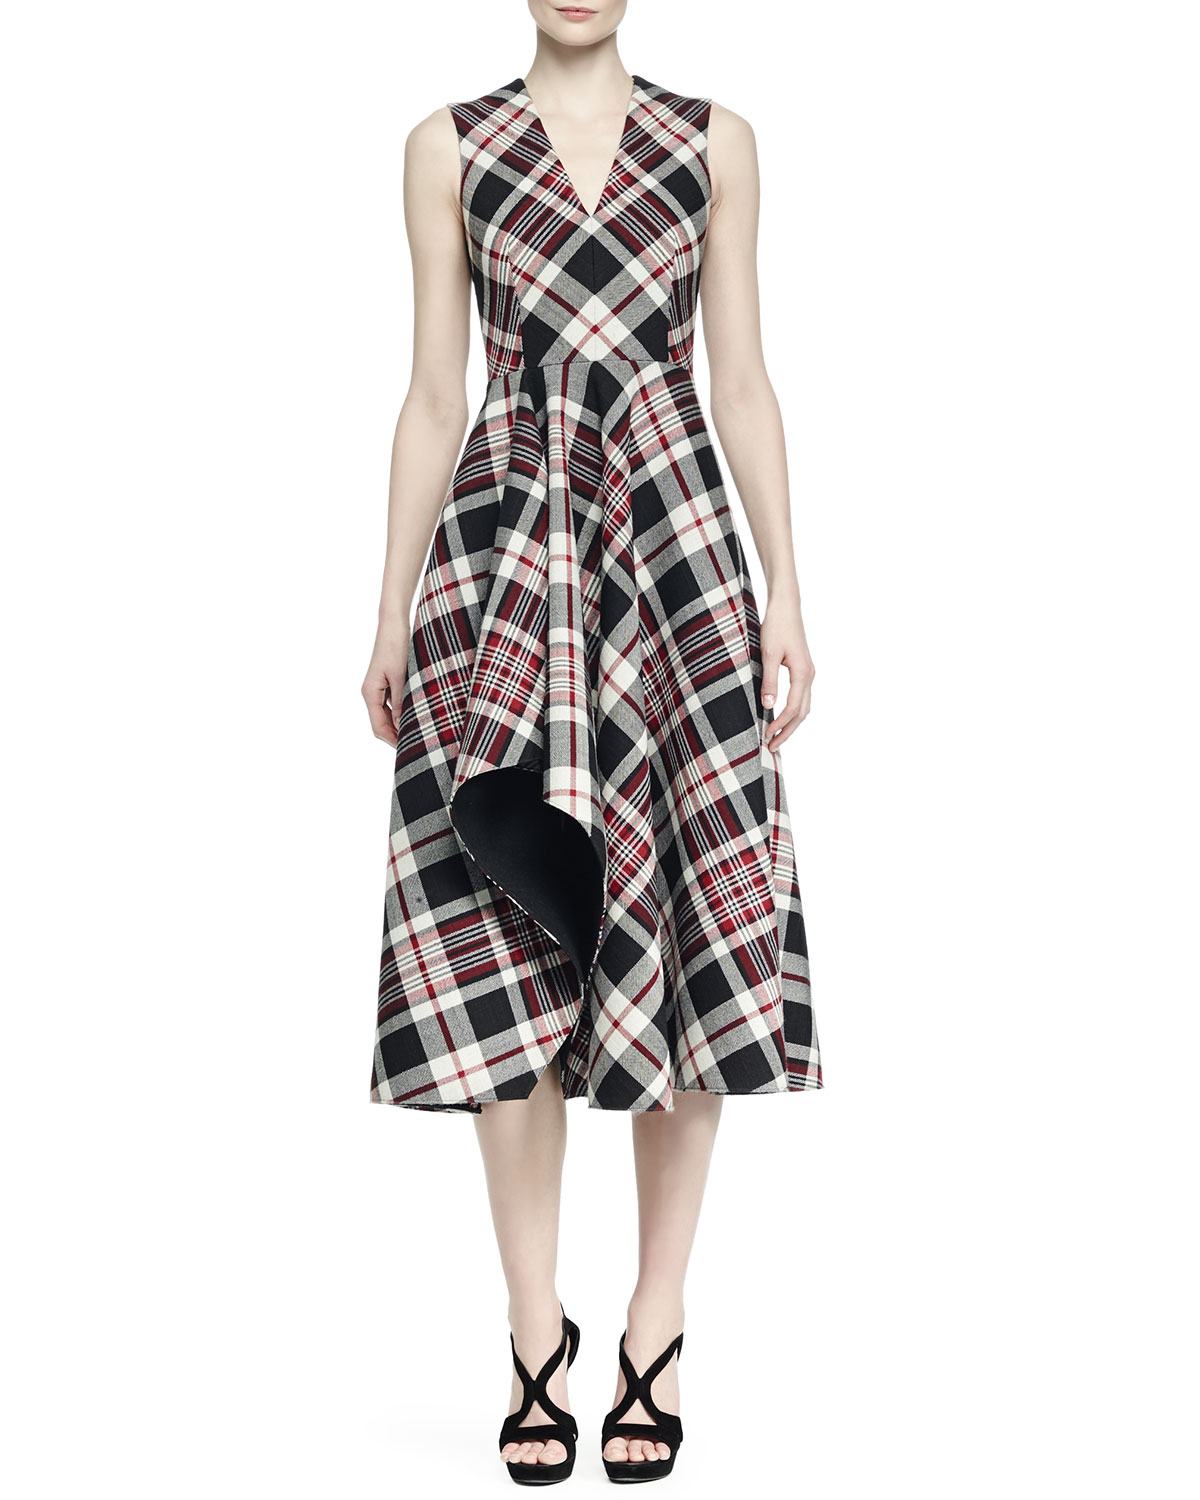 Ruffled Plaid Midi Dress